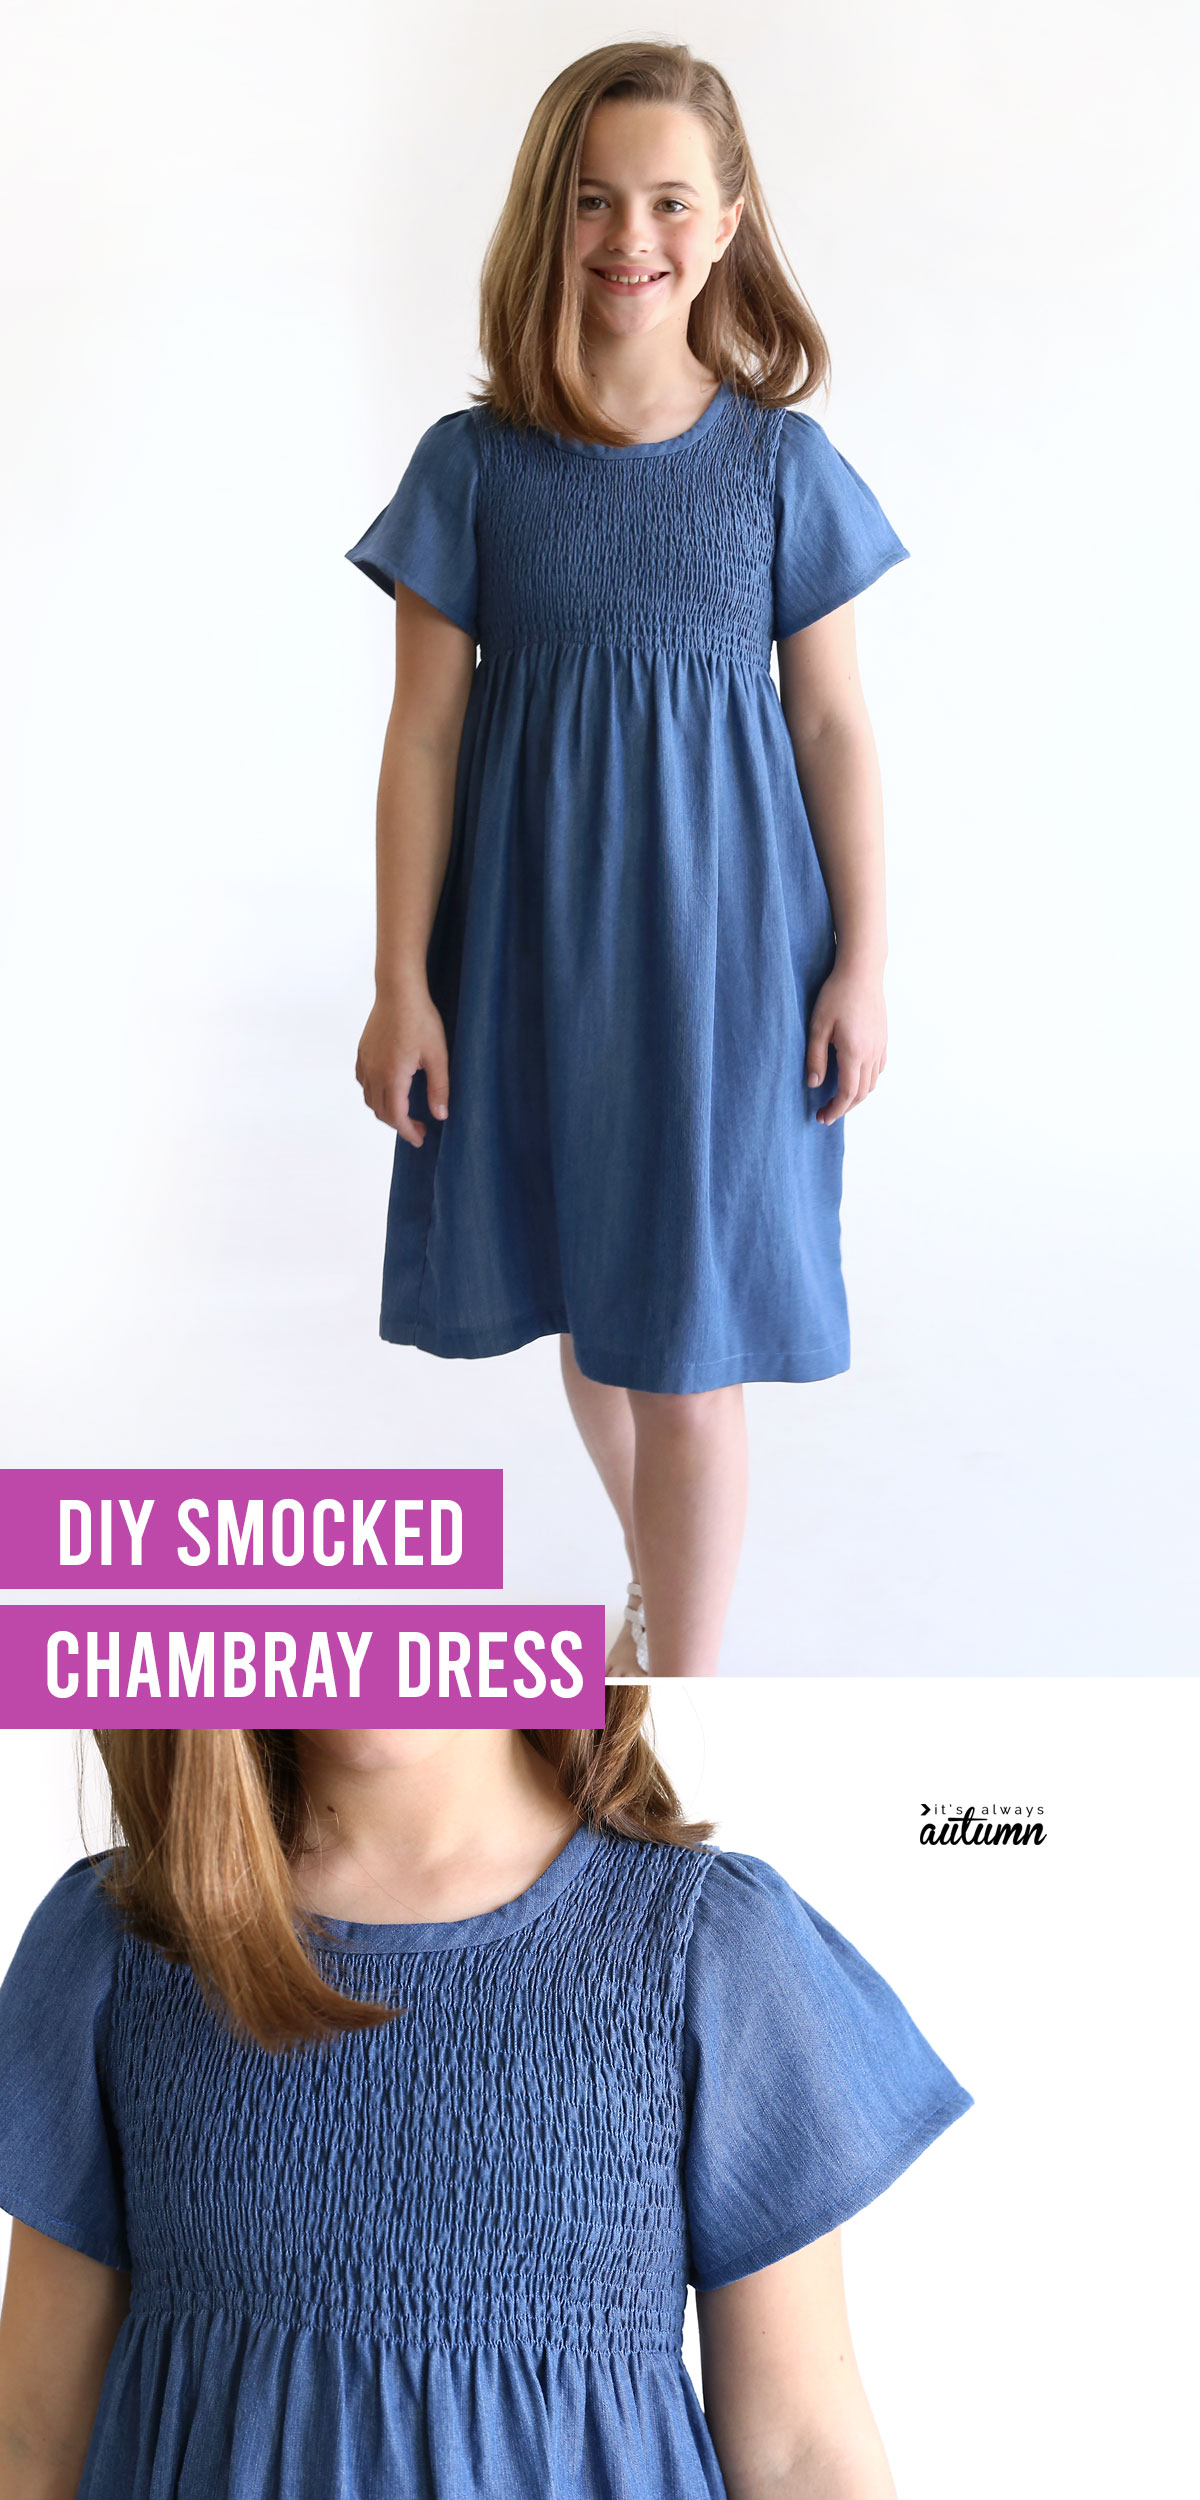 DIY smocked chambray dress; girl wearing a blue dress with smocked top